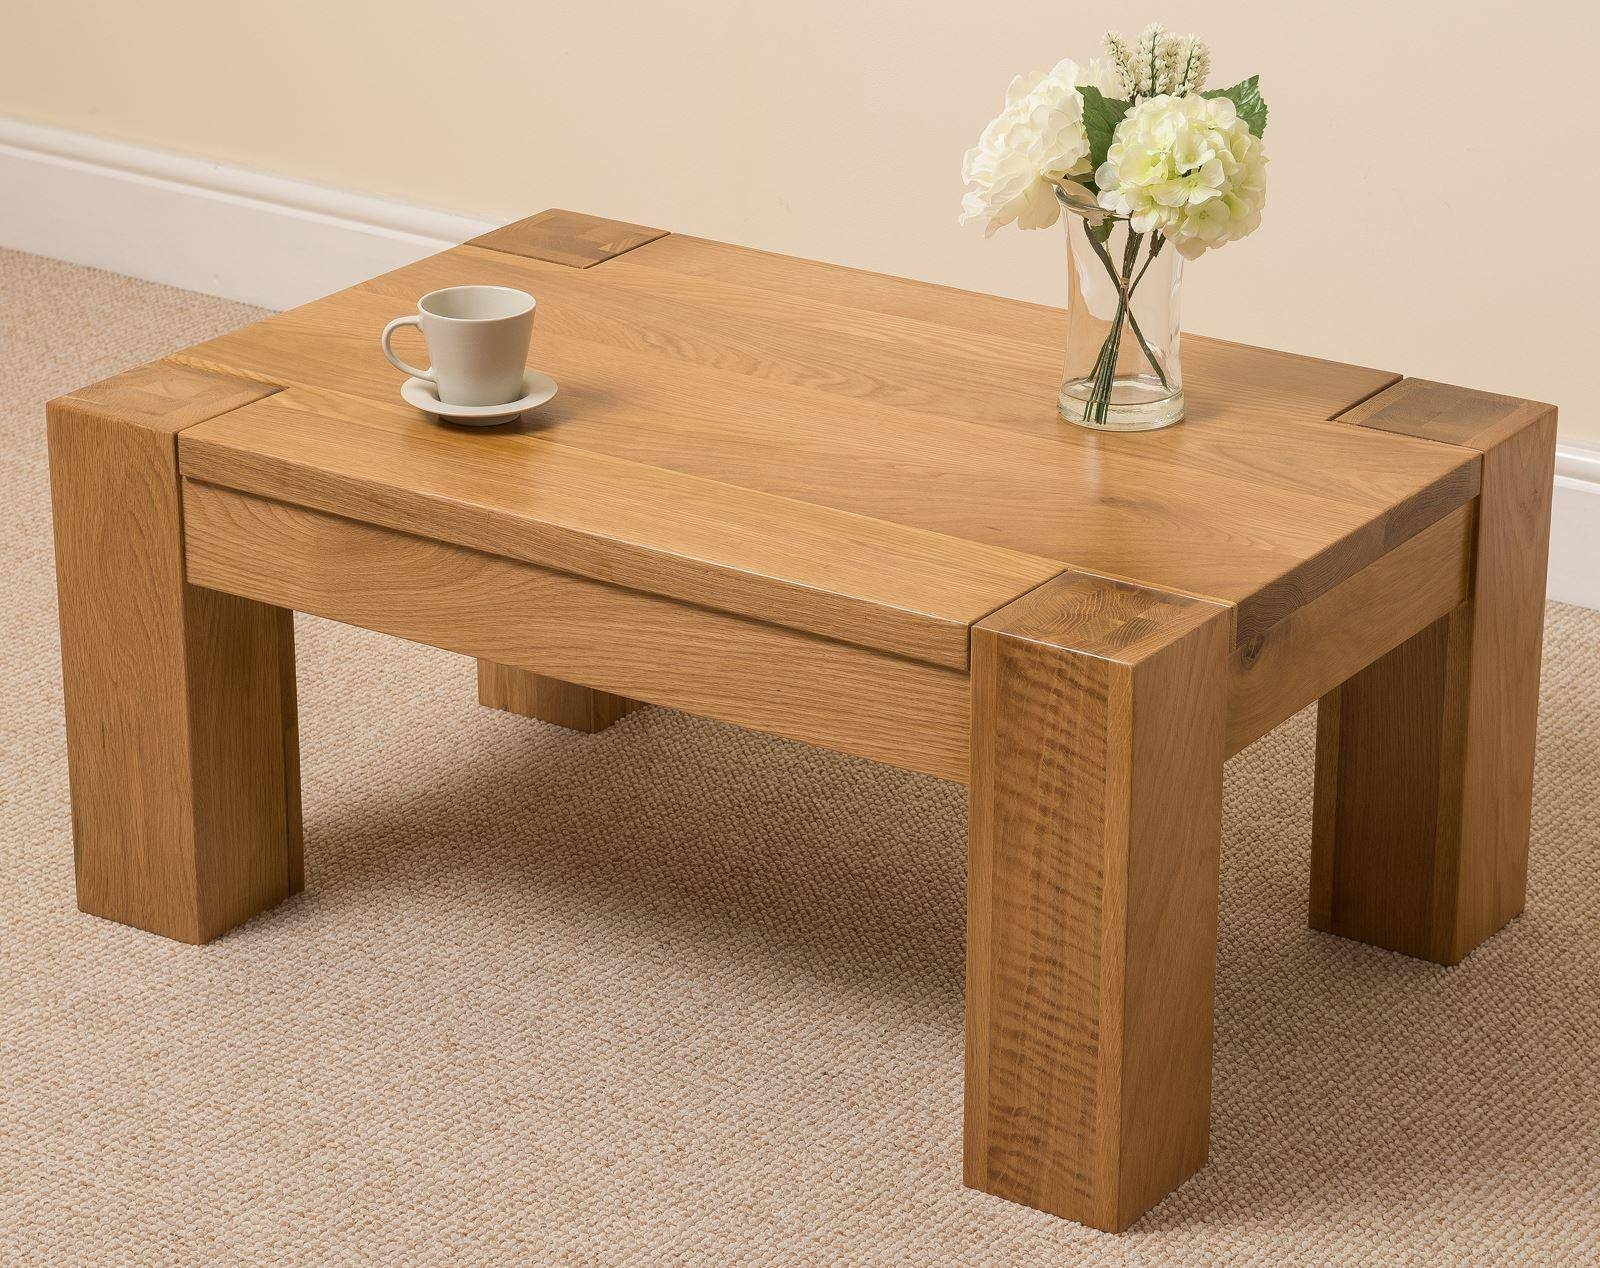 Kuba Solid Oak Coffee Table | Oak Furniture King pertaining to Chunky Oak Coffee Tables (Image 23 of 30)